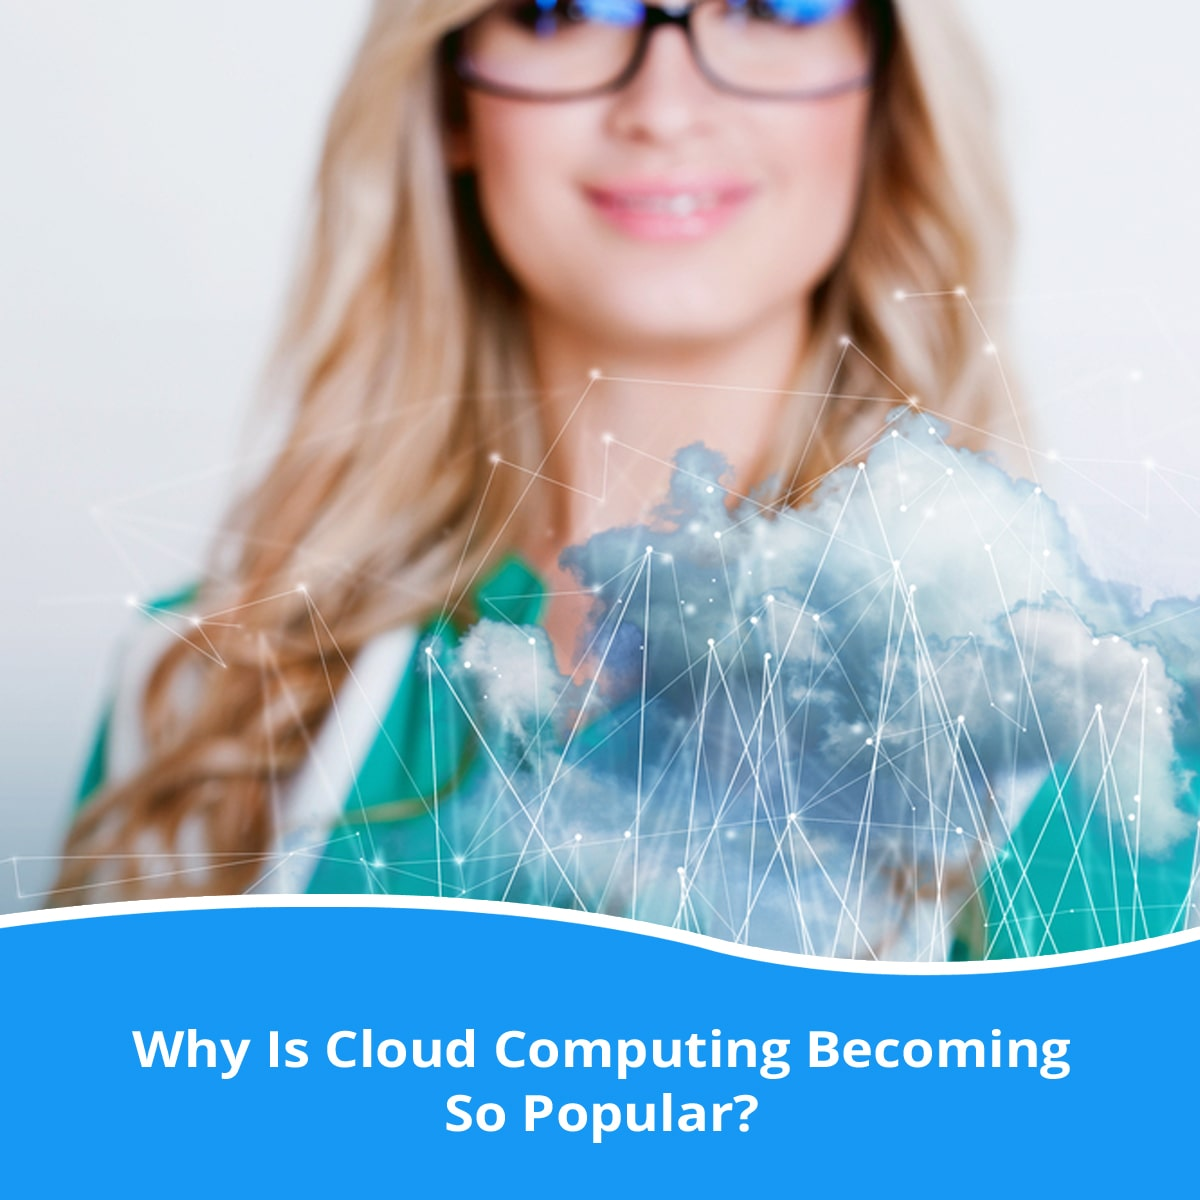 Why Is Cloud Computing Becoming So Popular?